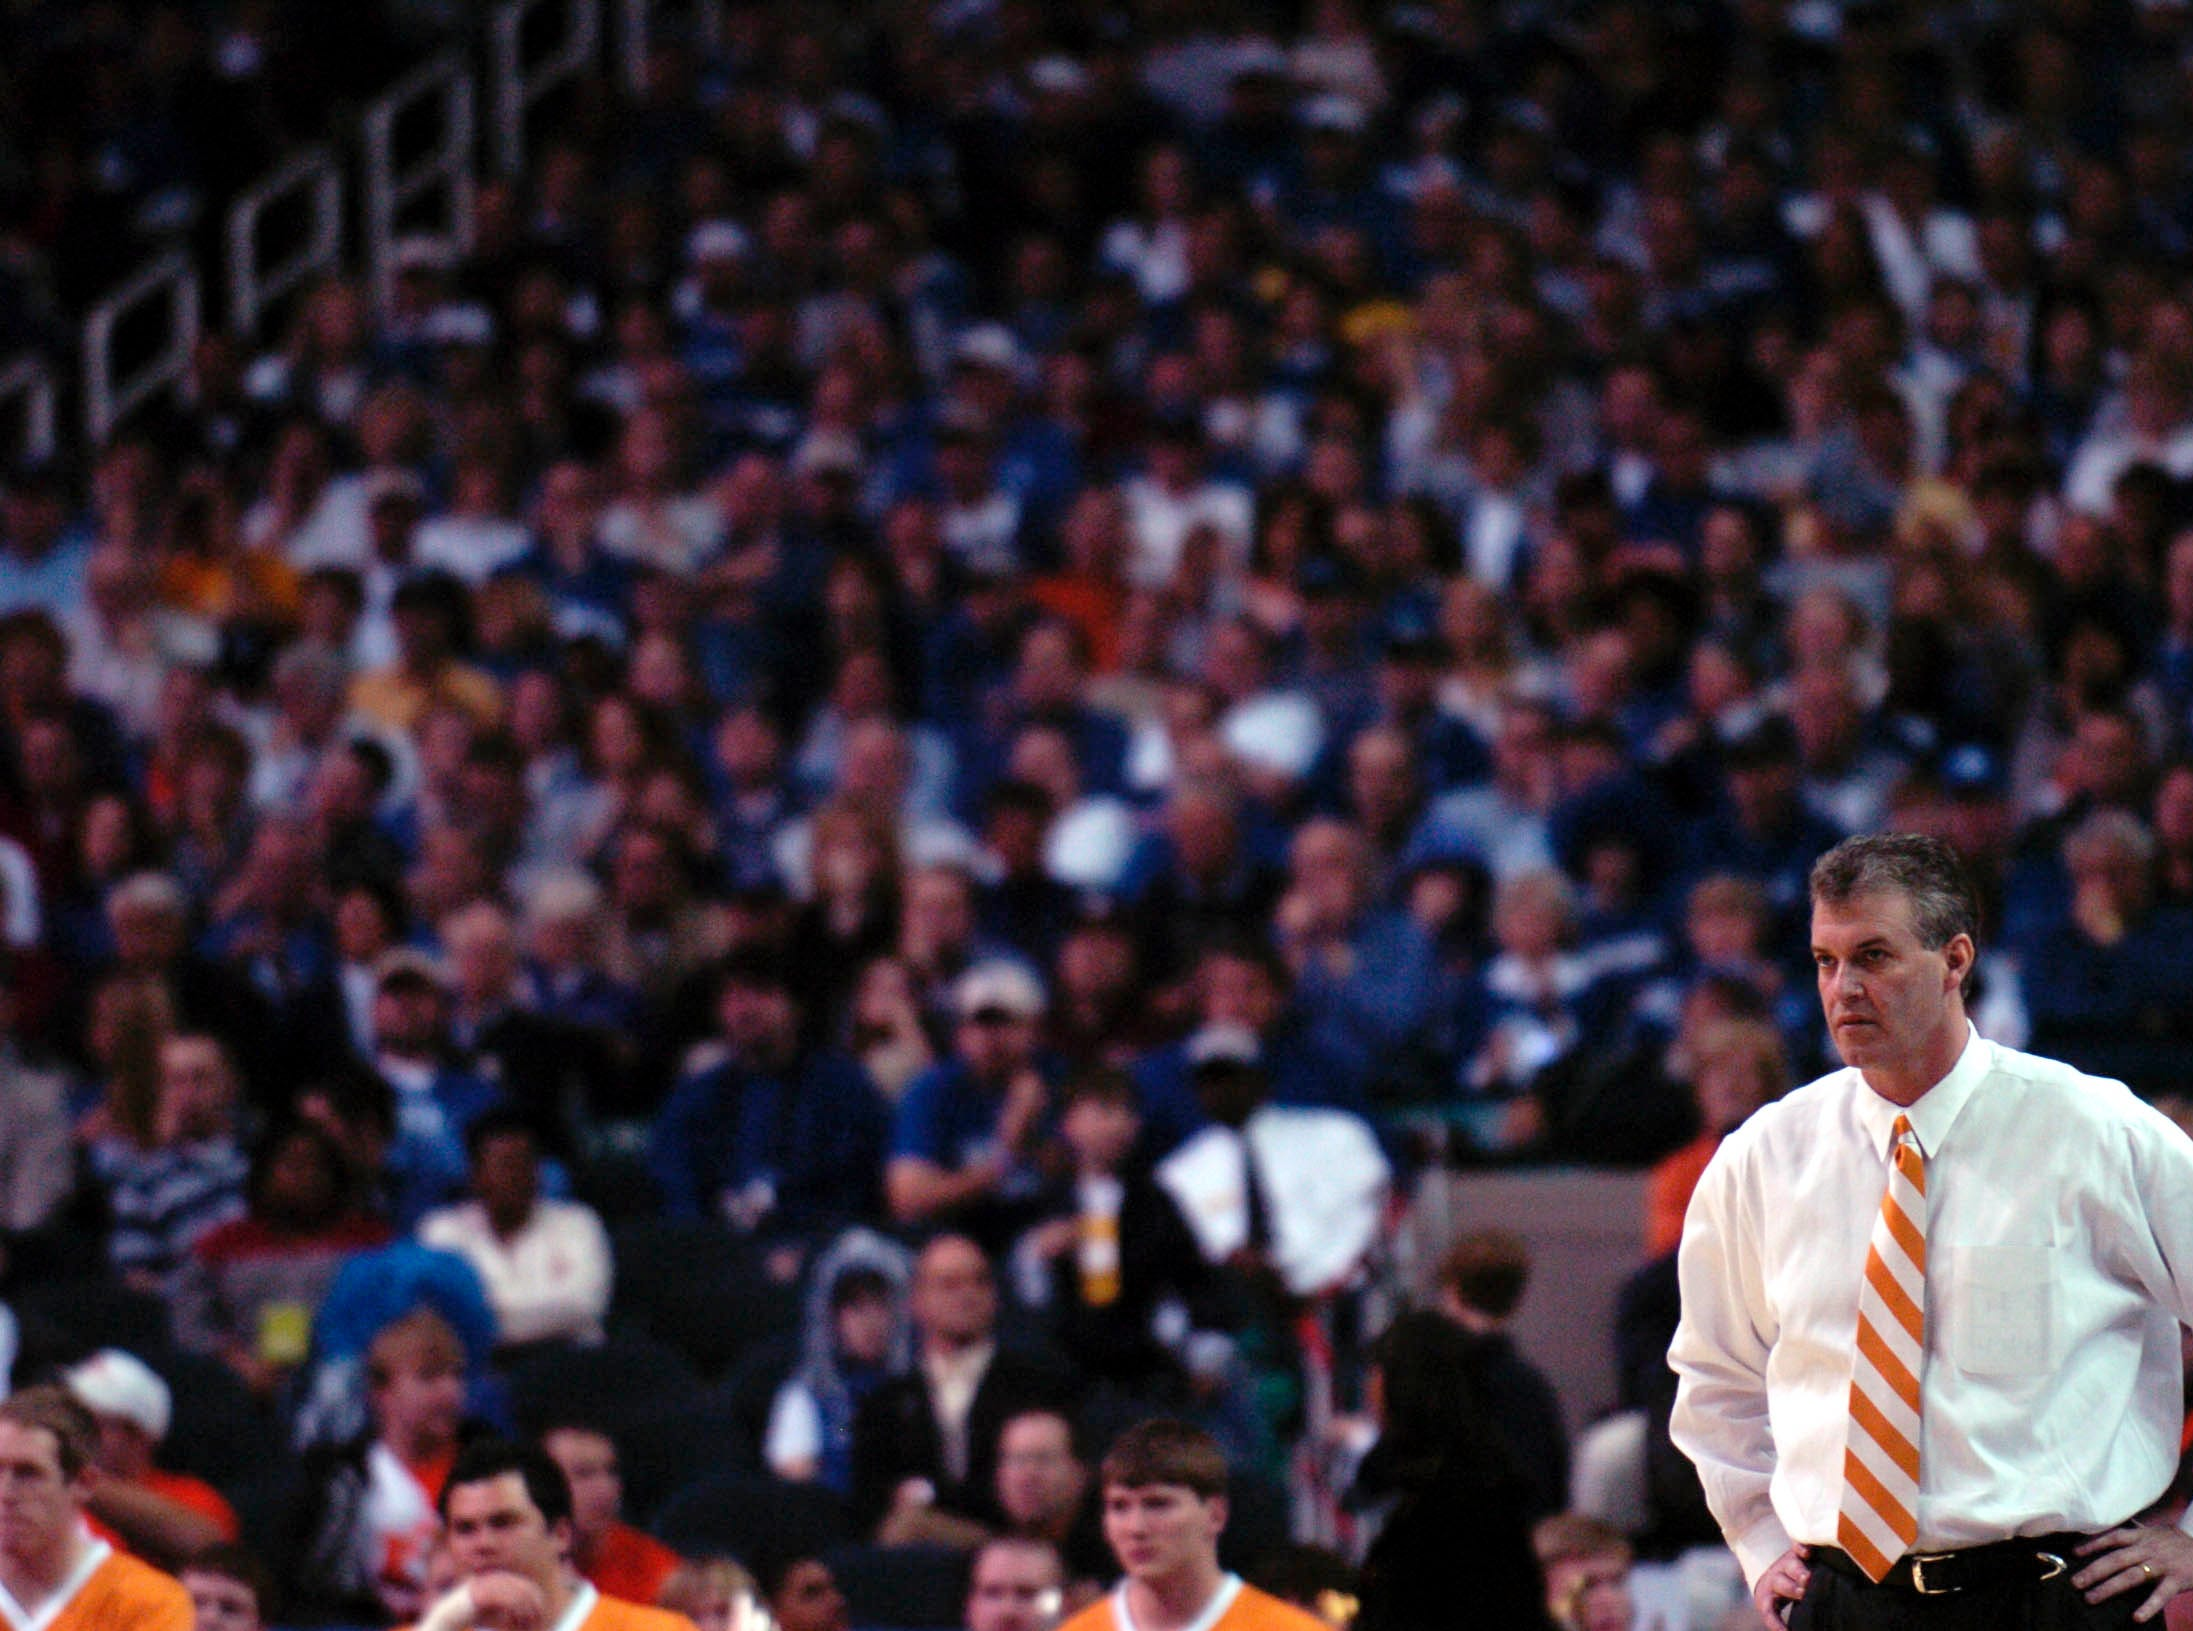 Tennessee head coach Buzz Peterson during the SEC quarterfinal game against Kentucky. 2005